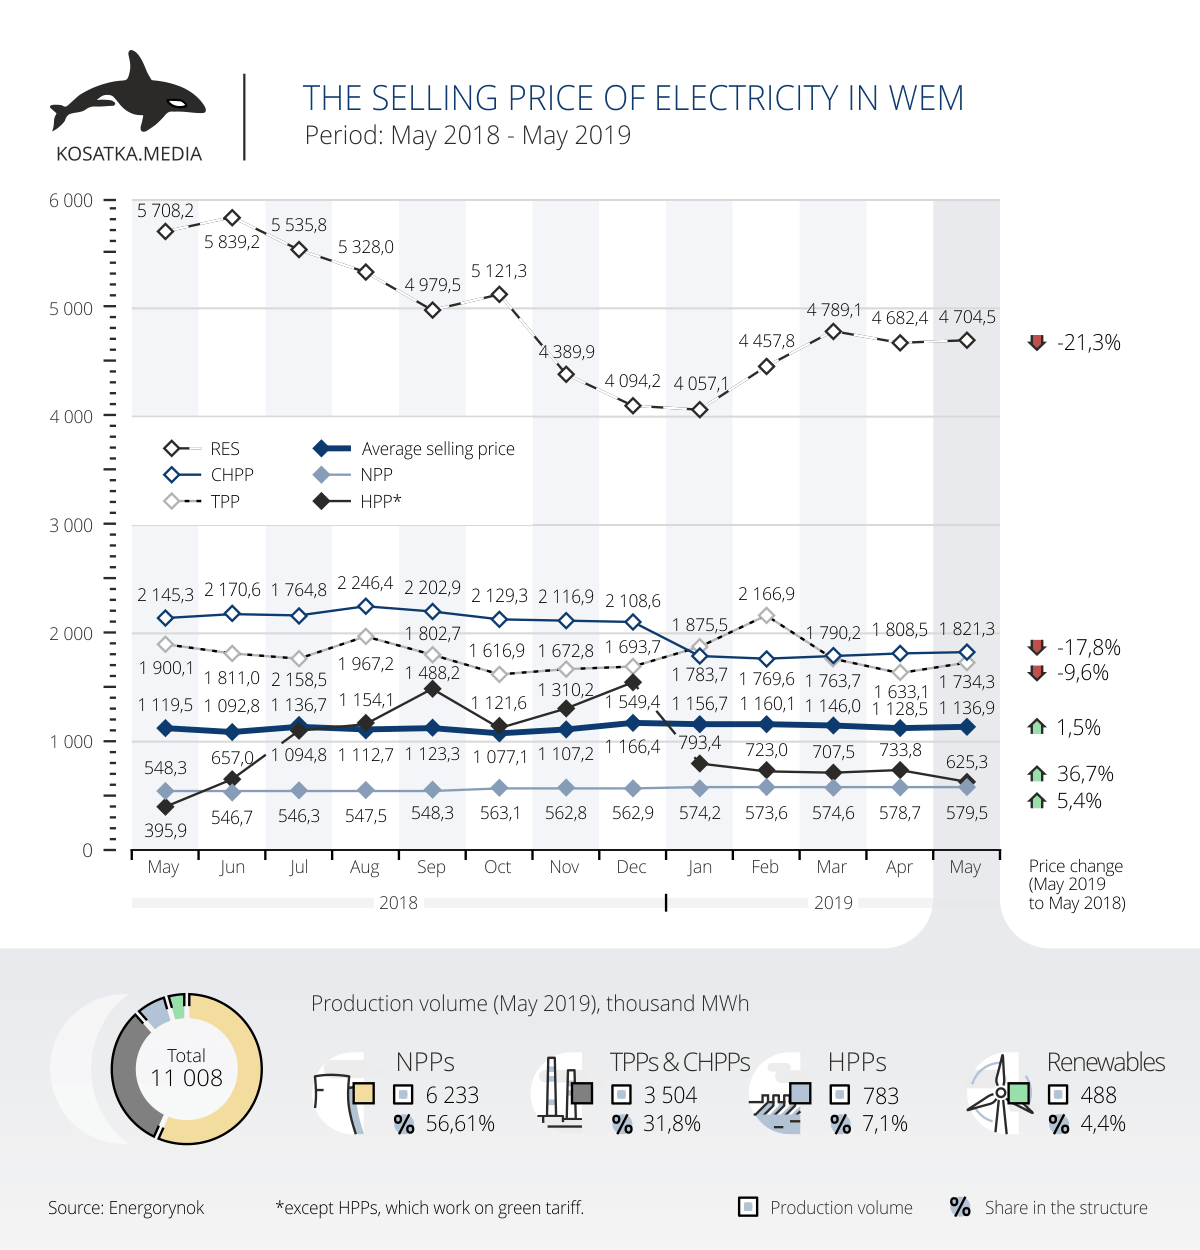 The selling price of electricity into WEM in May 2019